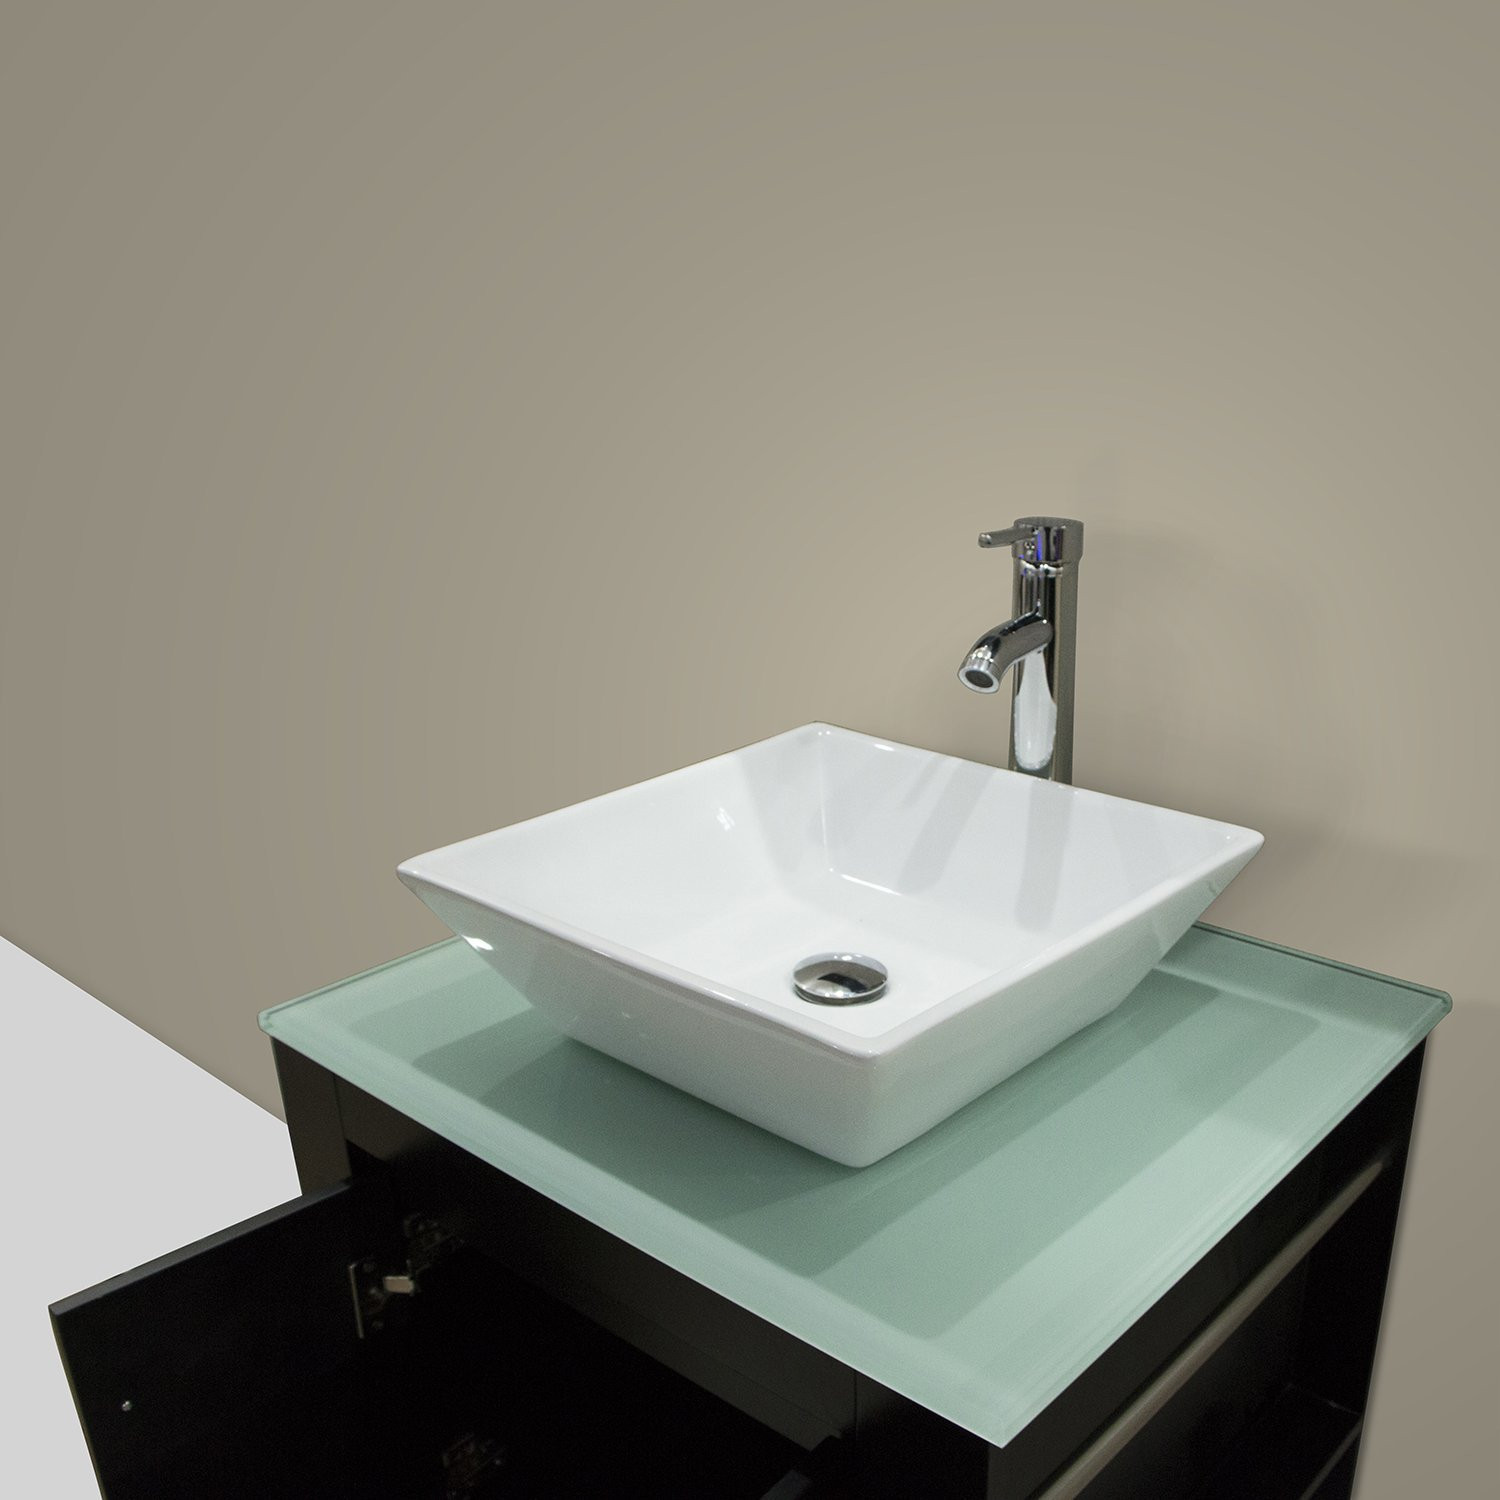 Best ideas about Home Depot Bathroom Sink . Save or Pin Bathroom Vanity 20x44 At Home Depot Showers Oak Vanities Now.